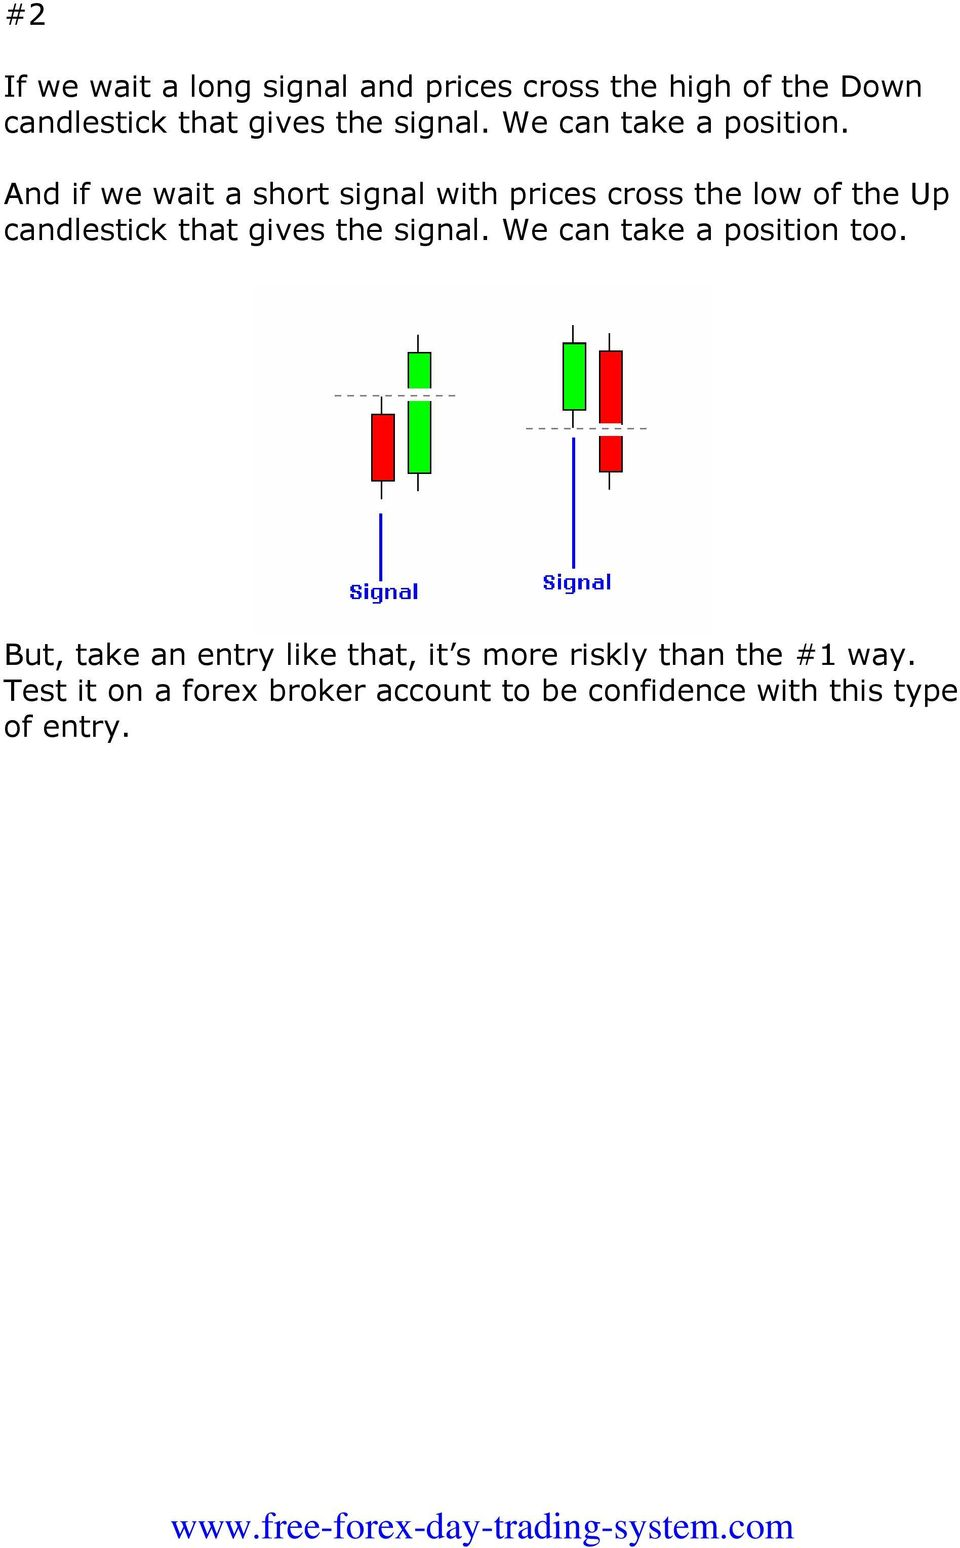 And if we wait a short signal with prices cross the low of the Up candlestick that gives the